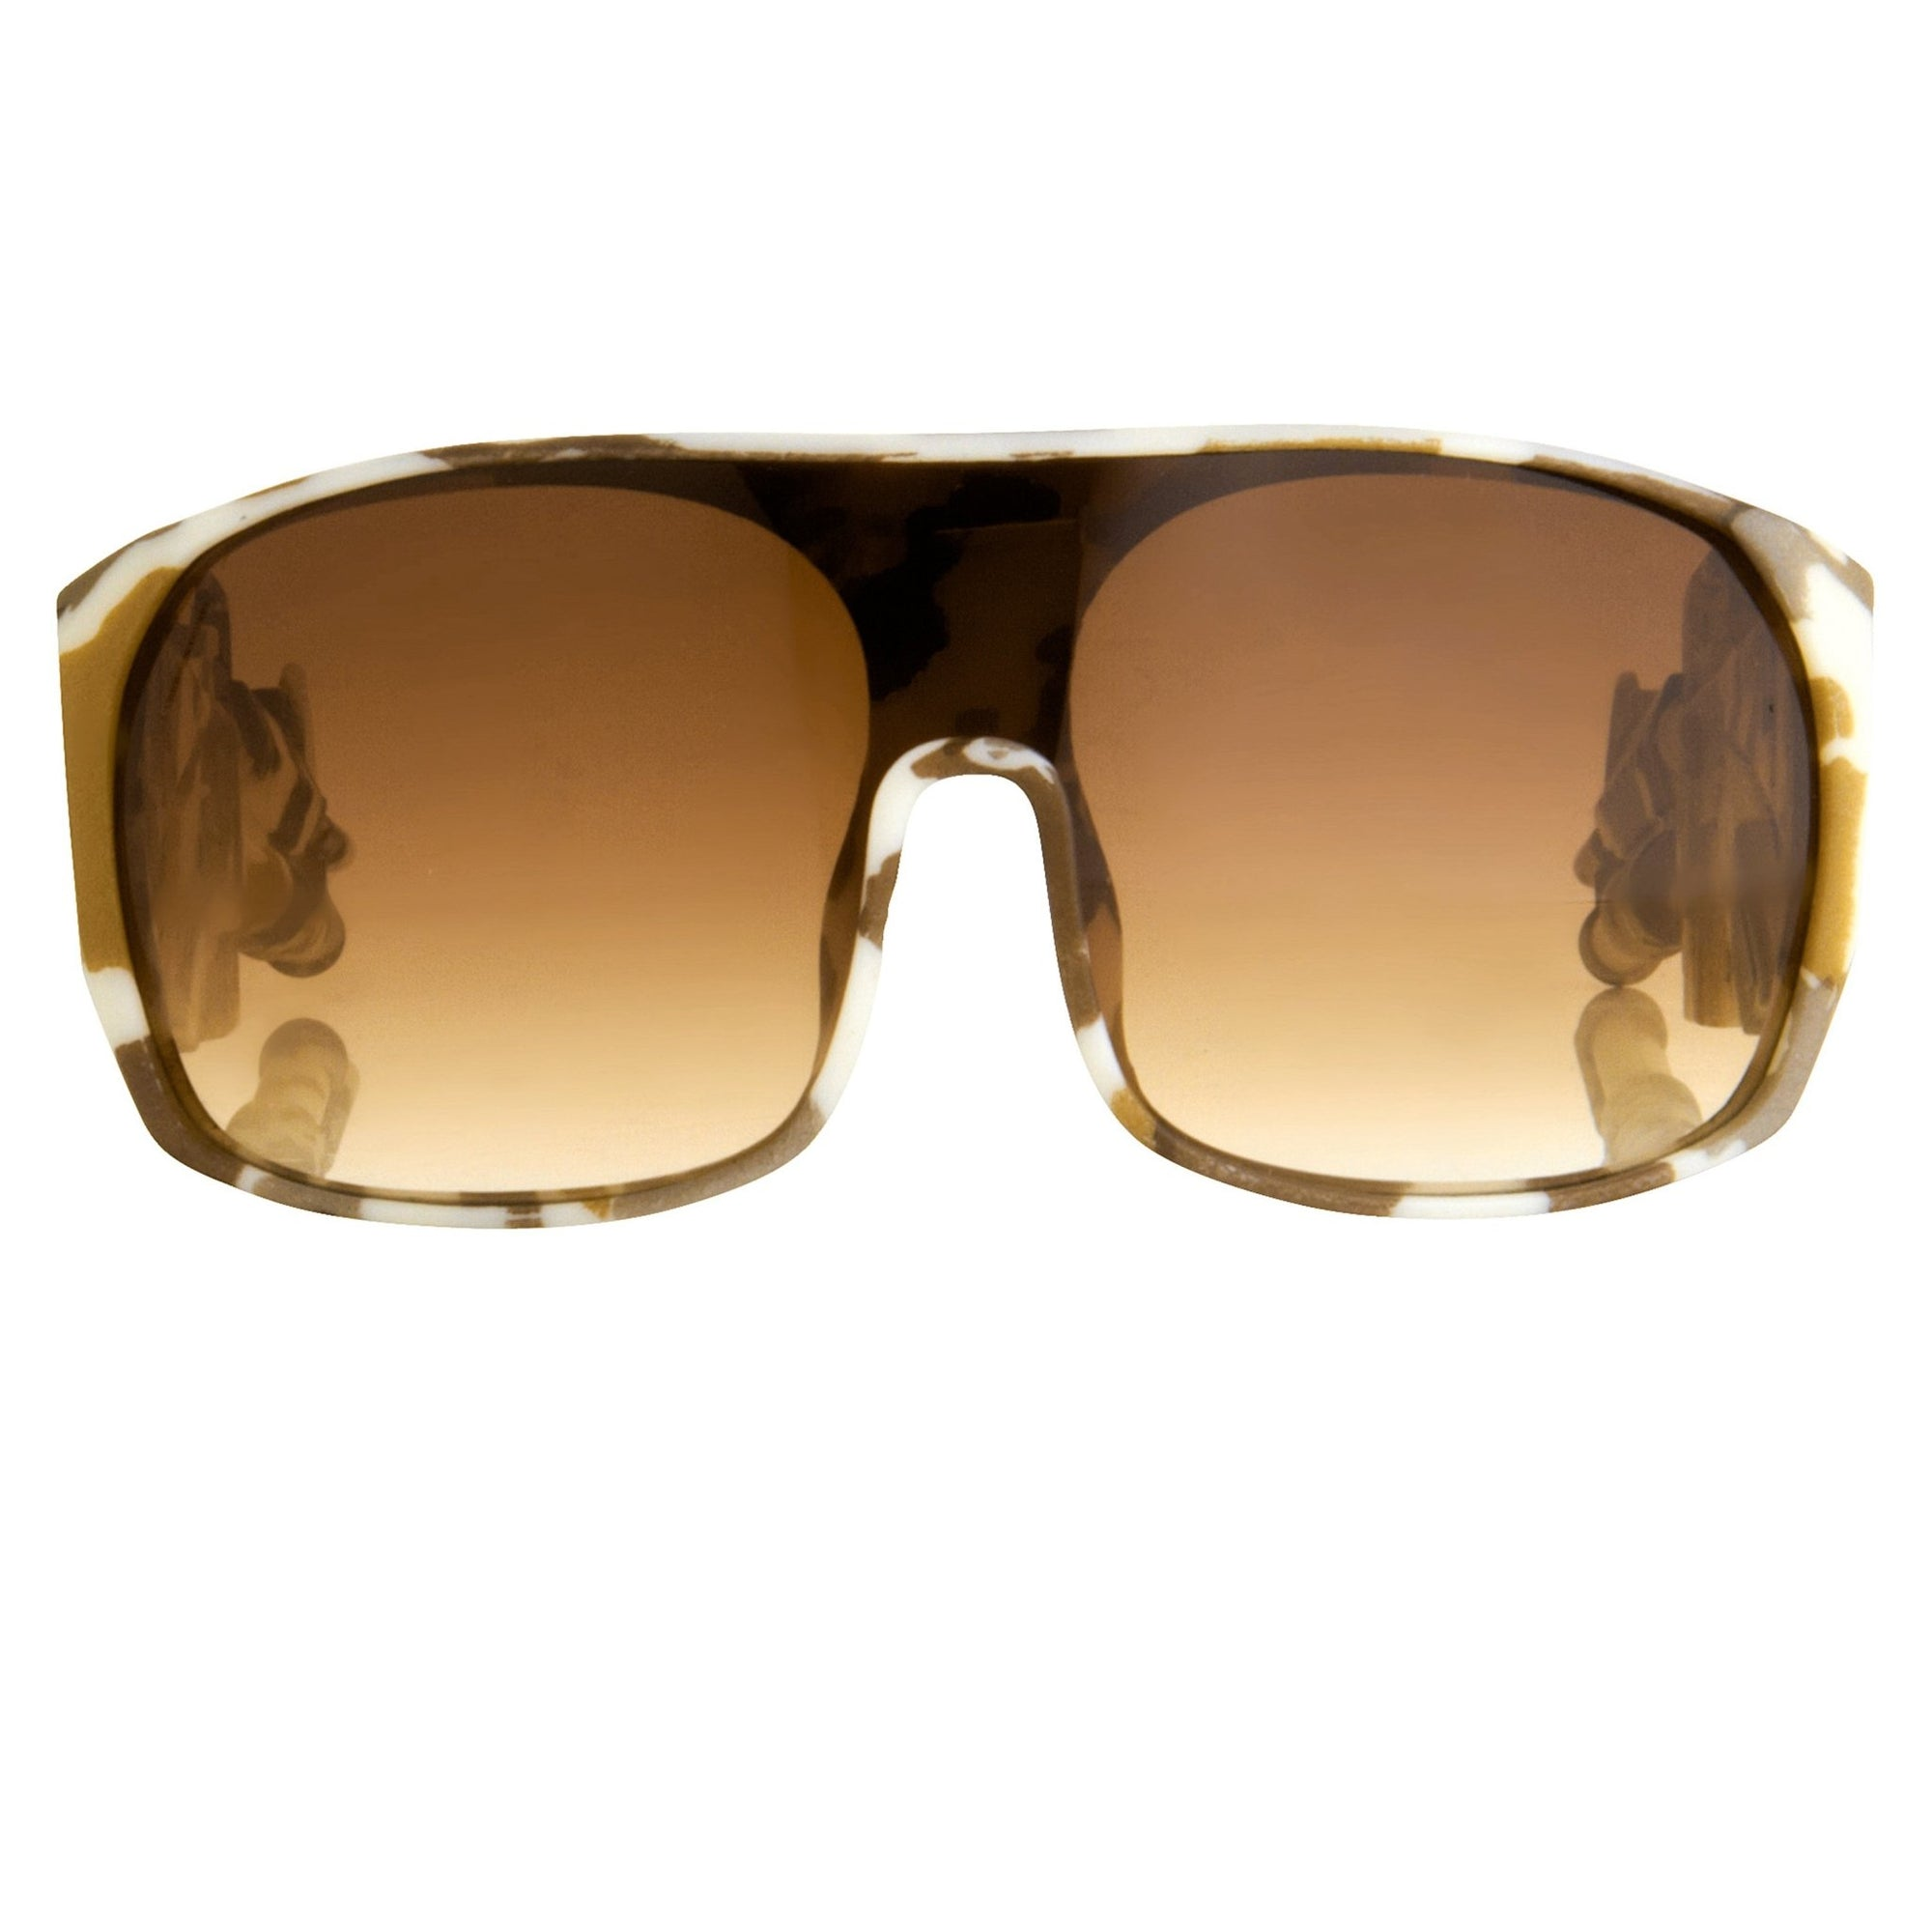 Jeremy Scott Sunglasses Rectangular Desert Camo With Brown Category 3 Graduated Lenses JSARMYC4SUN - Watches & Crystals